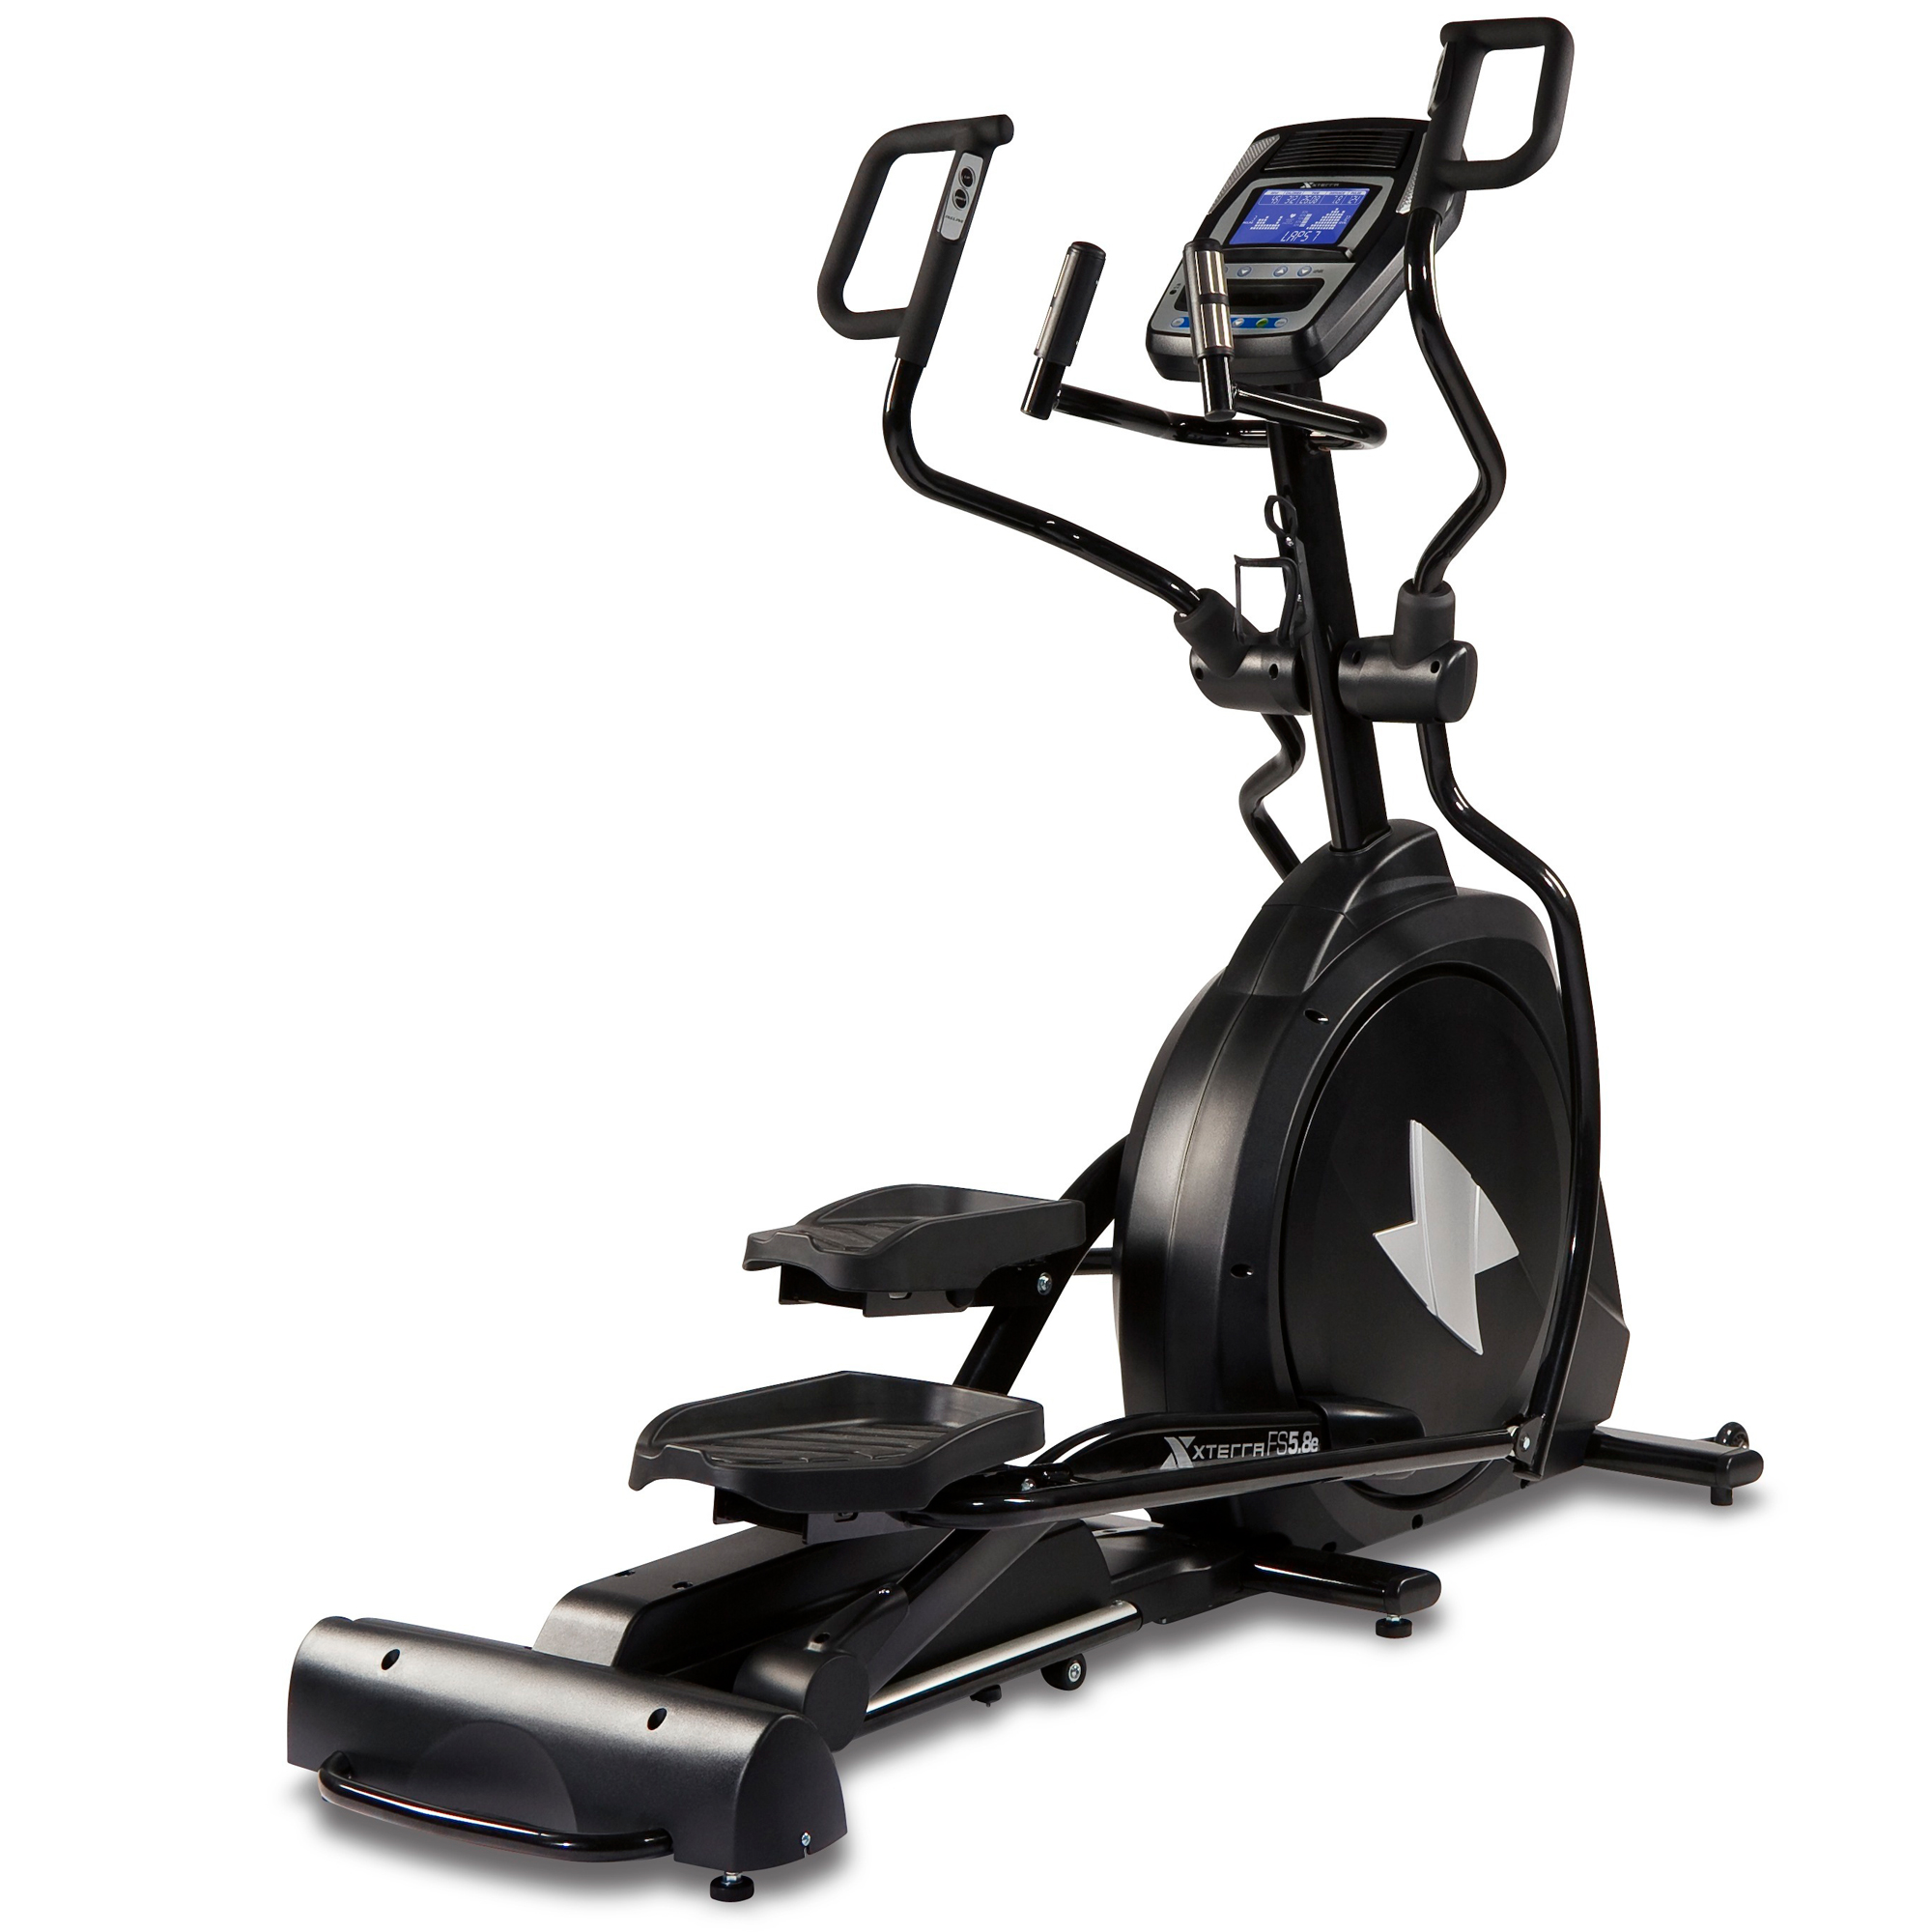 York Fitness Diamond X400 Elliptical Trainer Review